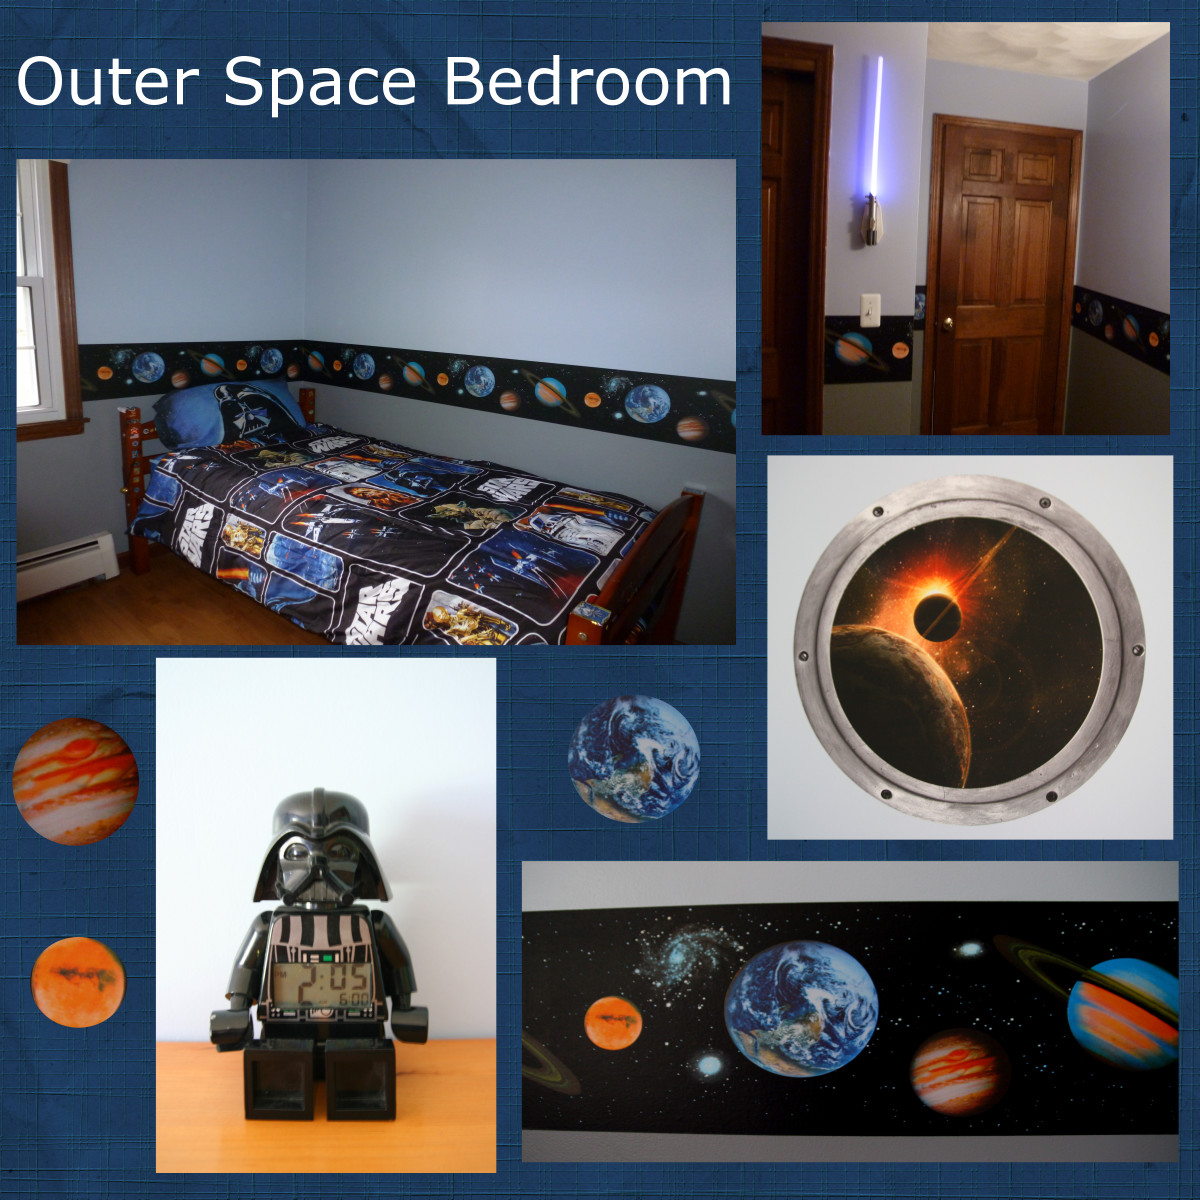 Outer space bedroom decorating ideas hubpages for Outer space childrens decor